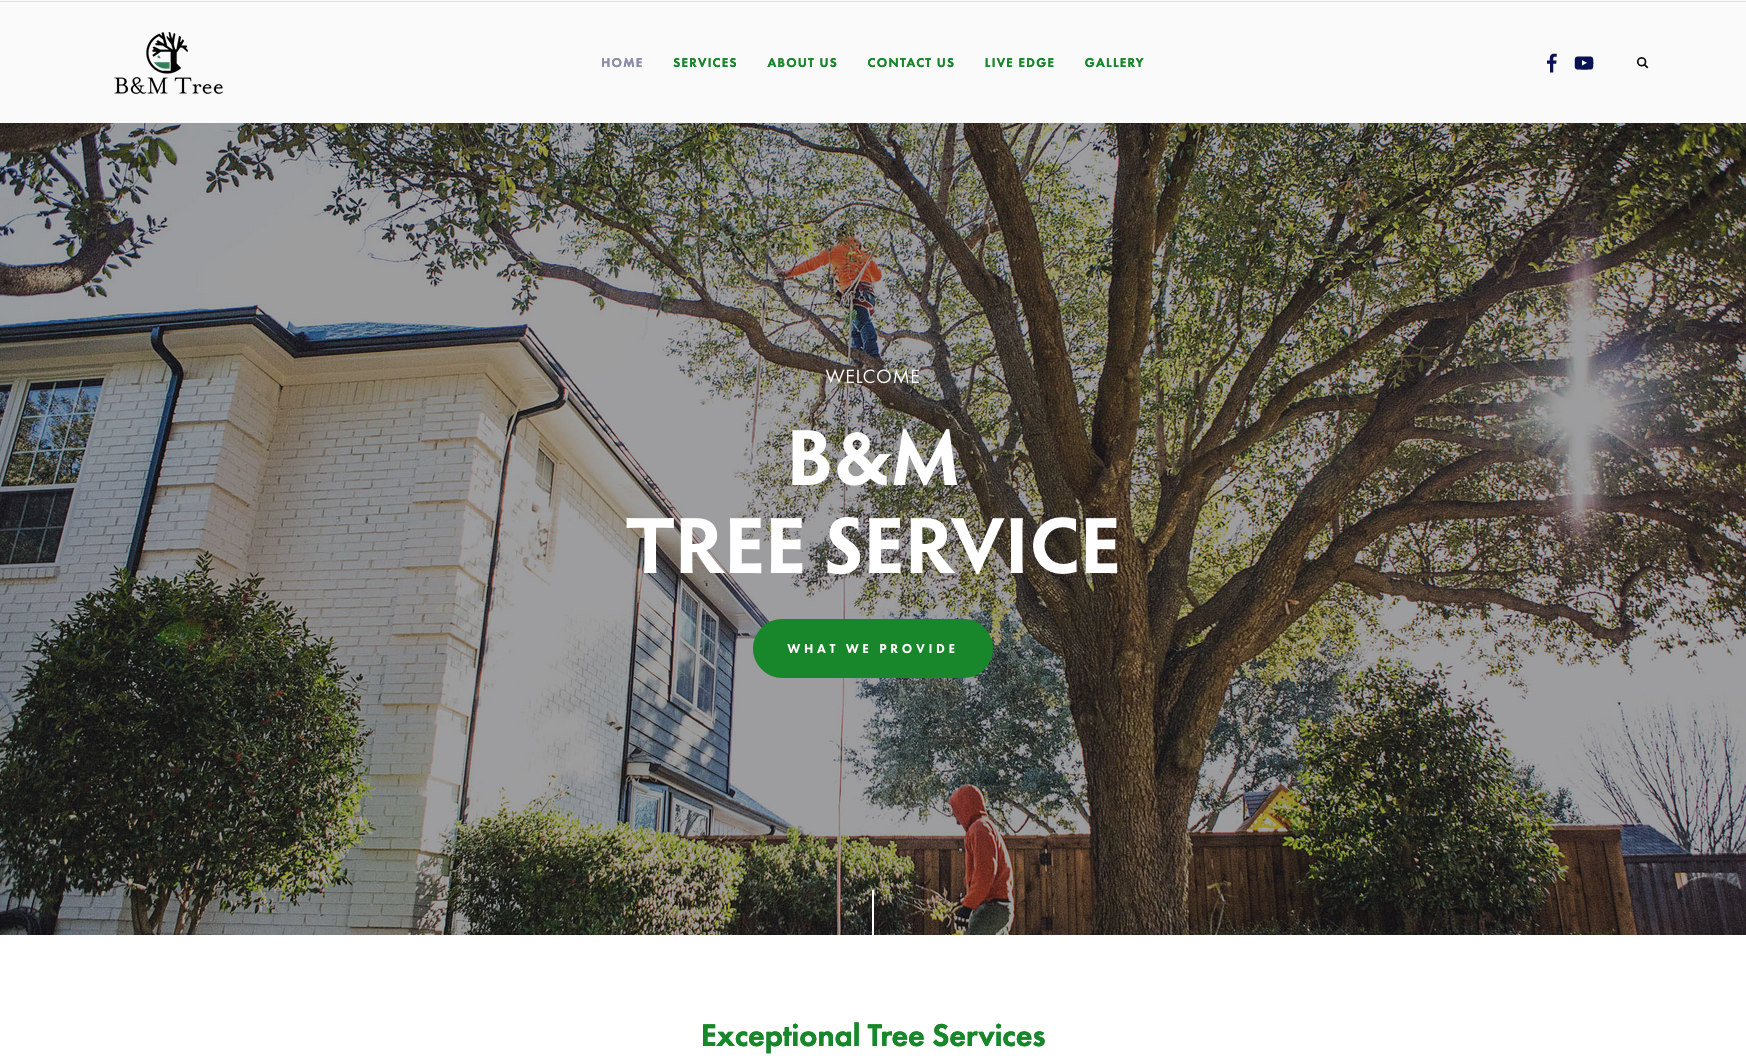 BM Tree Trim      - A Squarespace website for a local tree service company, also featuring Jessica's photography of client's services